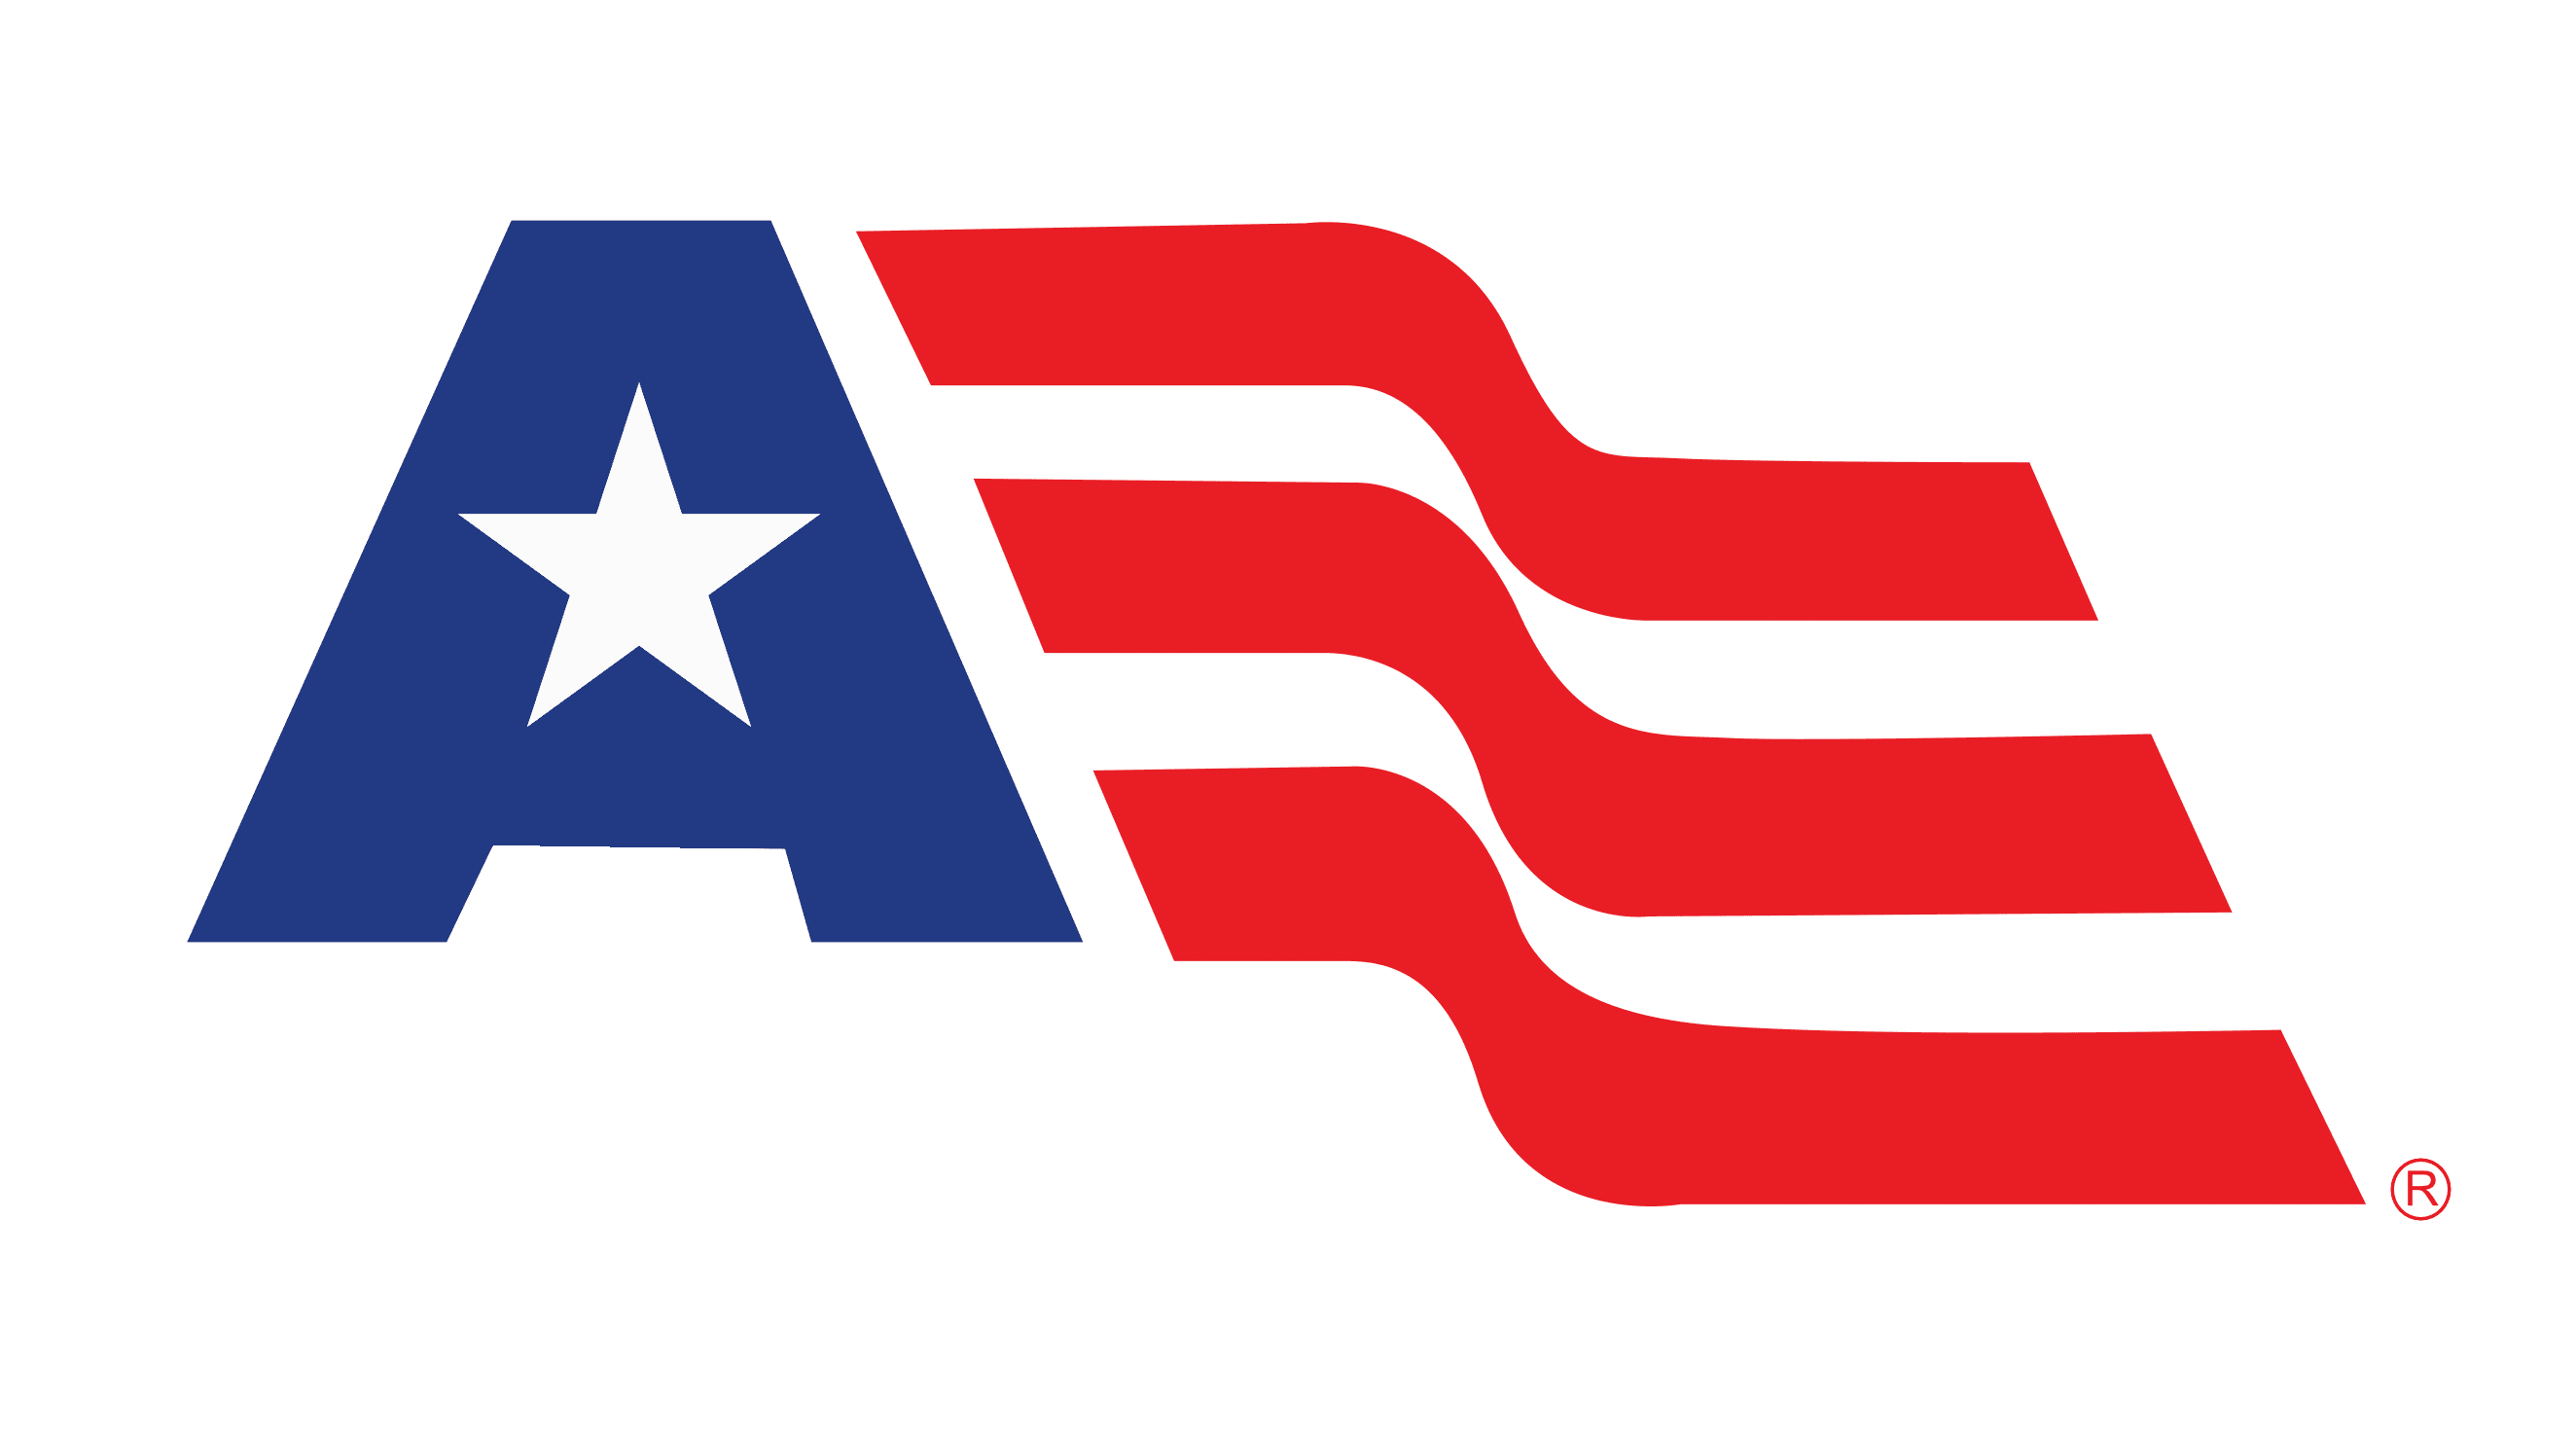 An American flag letter A icon from A-American Self Storage in Ridgecrest, California